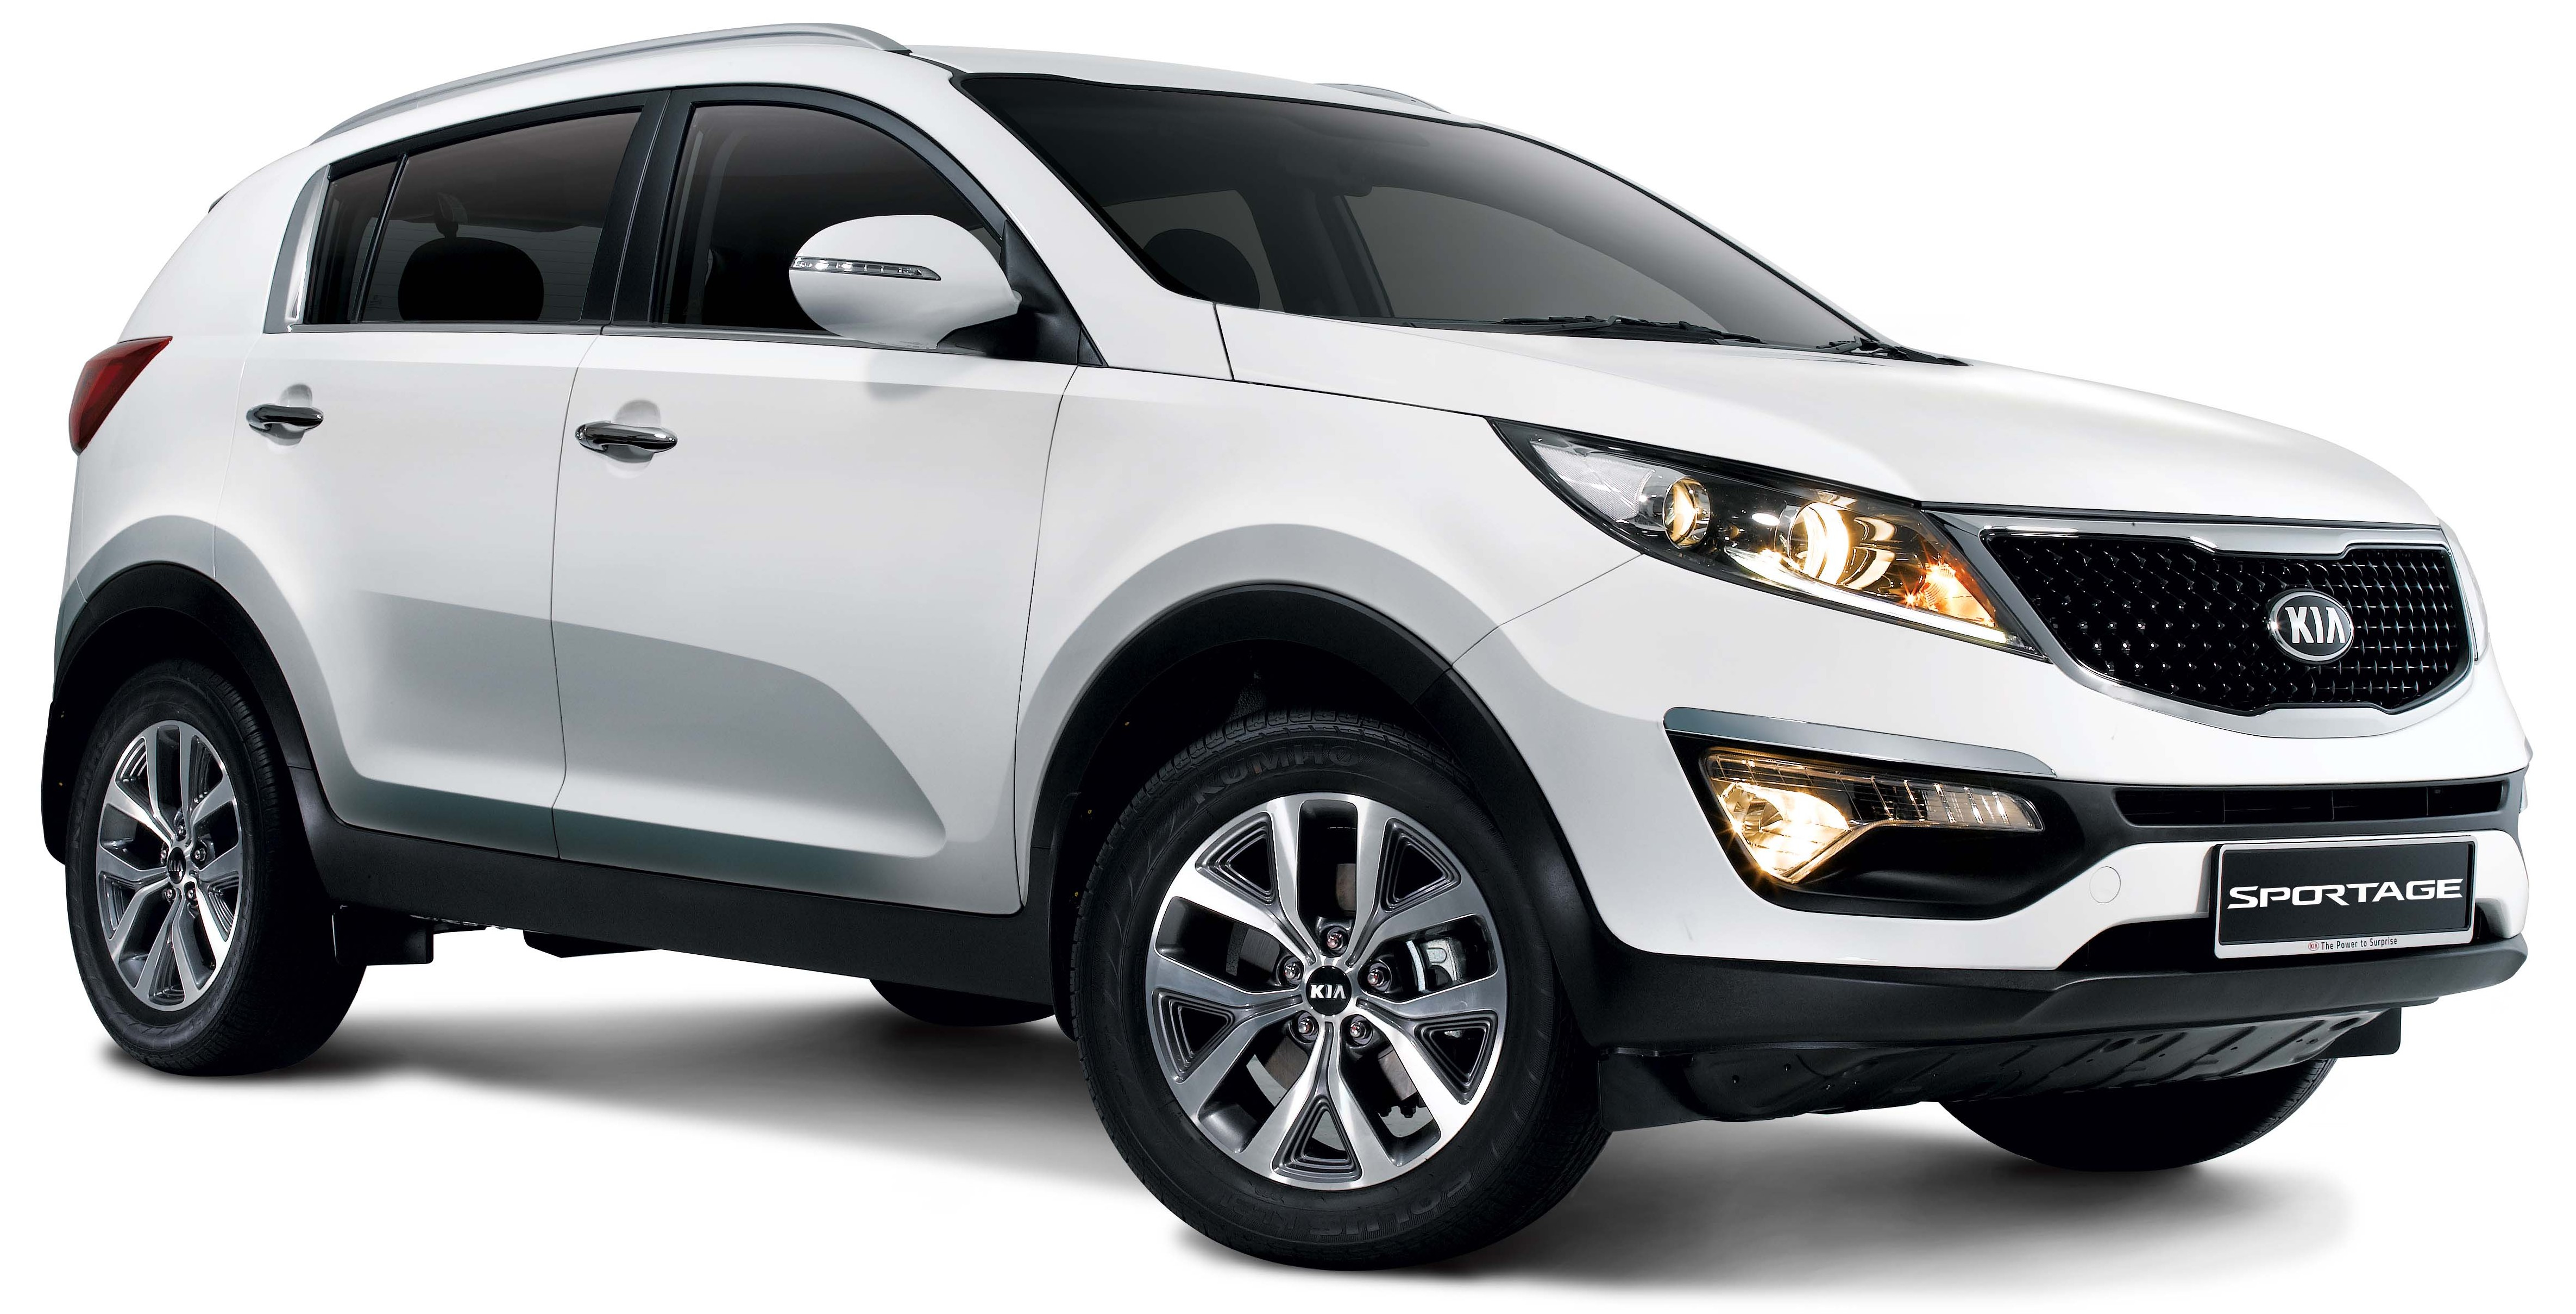 kia sportage 2wd now here 2 0l 6 airbags rm119k. Black Bedroom Furniture Sets. Home Design Ideas